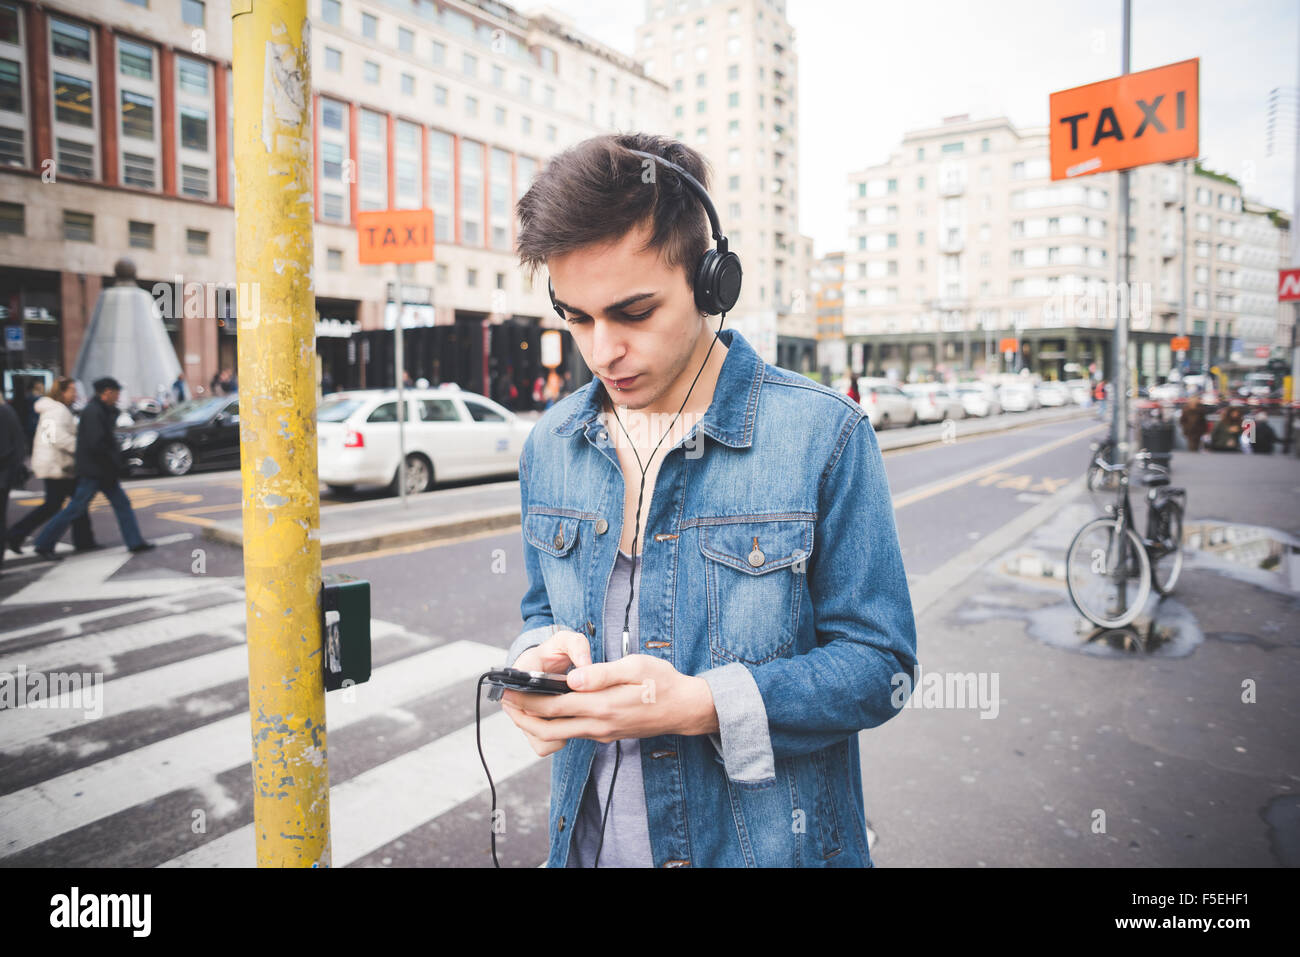 Half length of young handsome alternative dark model man in town listening to music with headphones and smartphone, - Stock Image